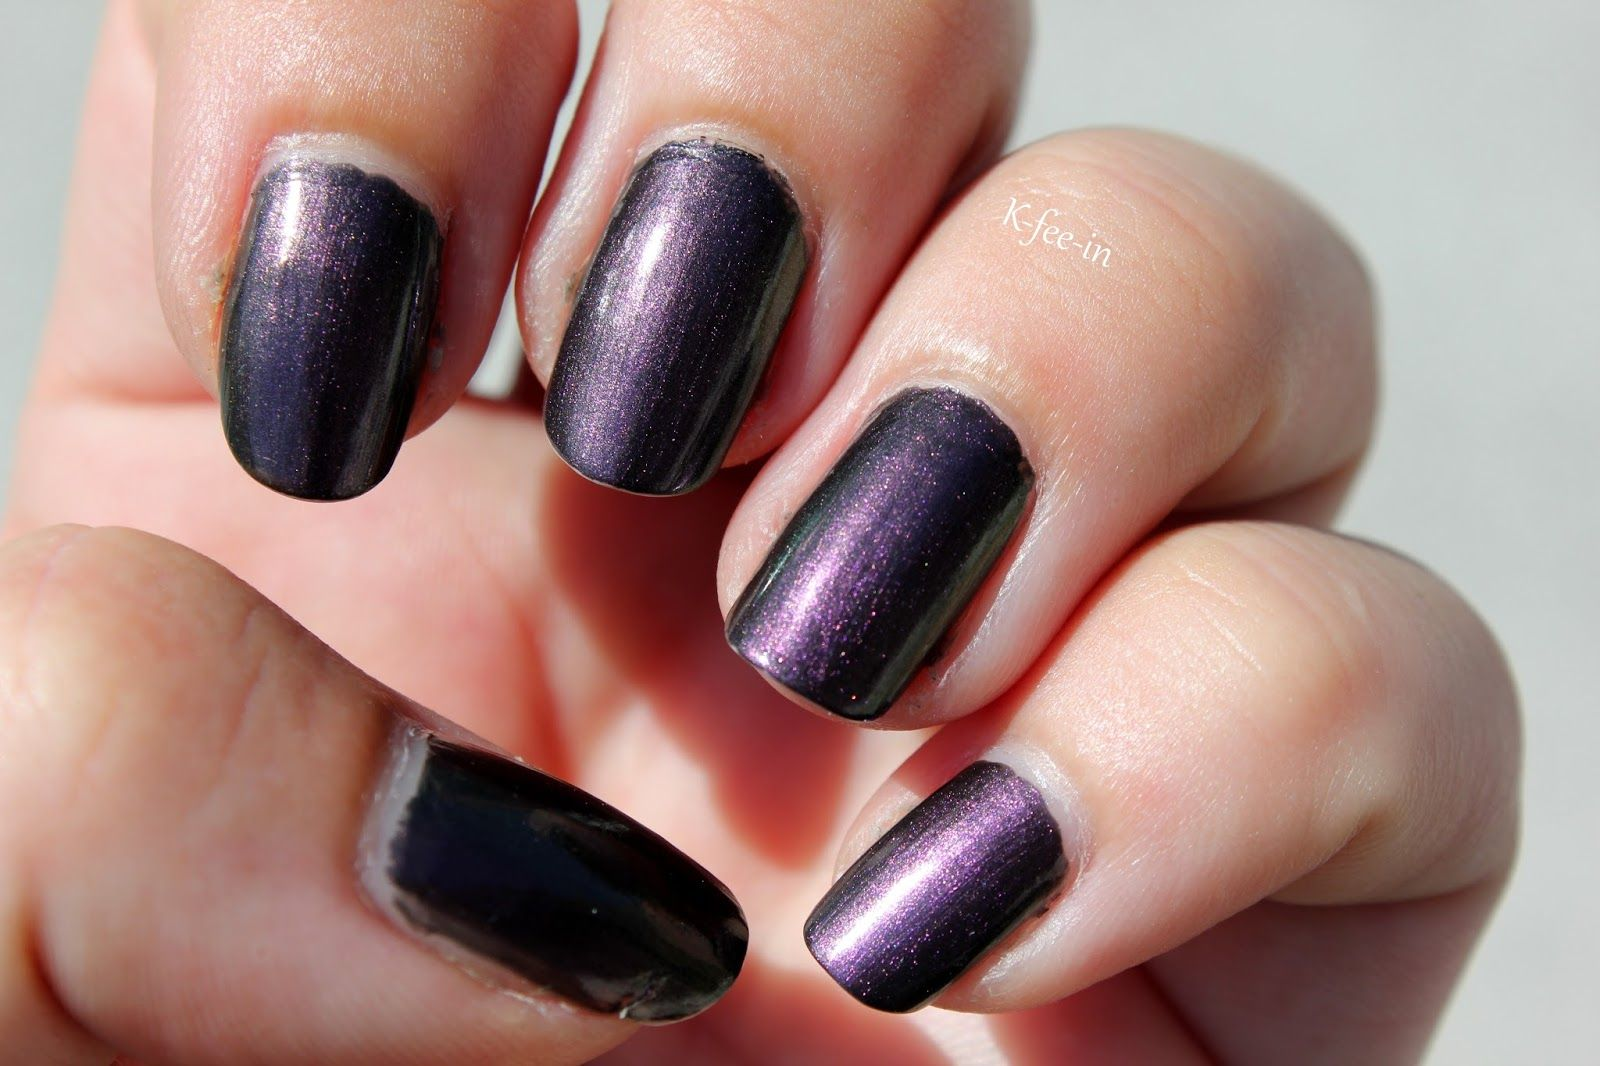 Kiko Laser n°433 - Kféein Nail Polish Addict | nails! | Pinterest